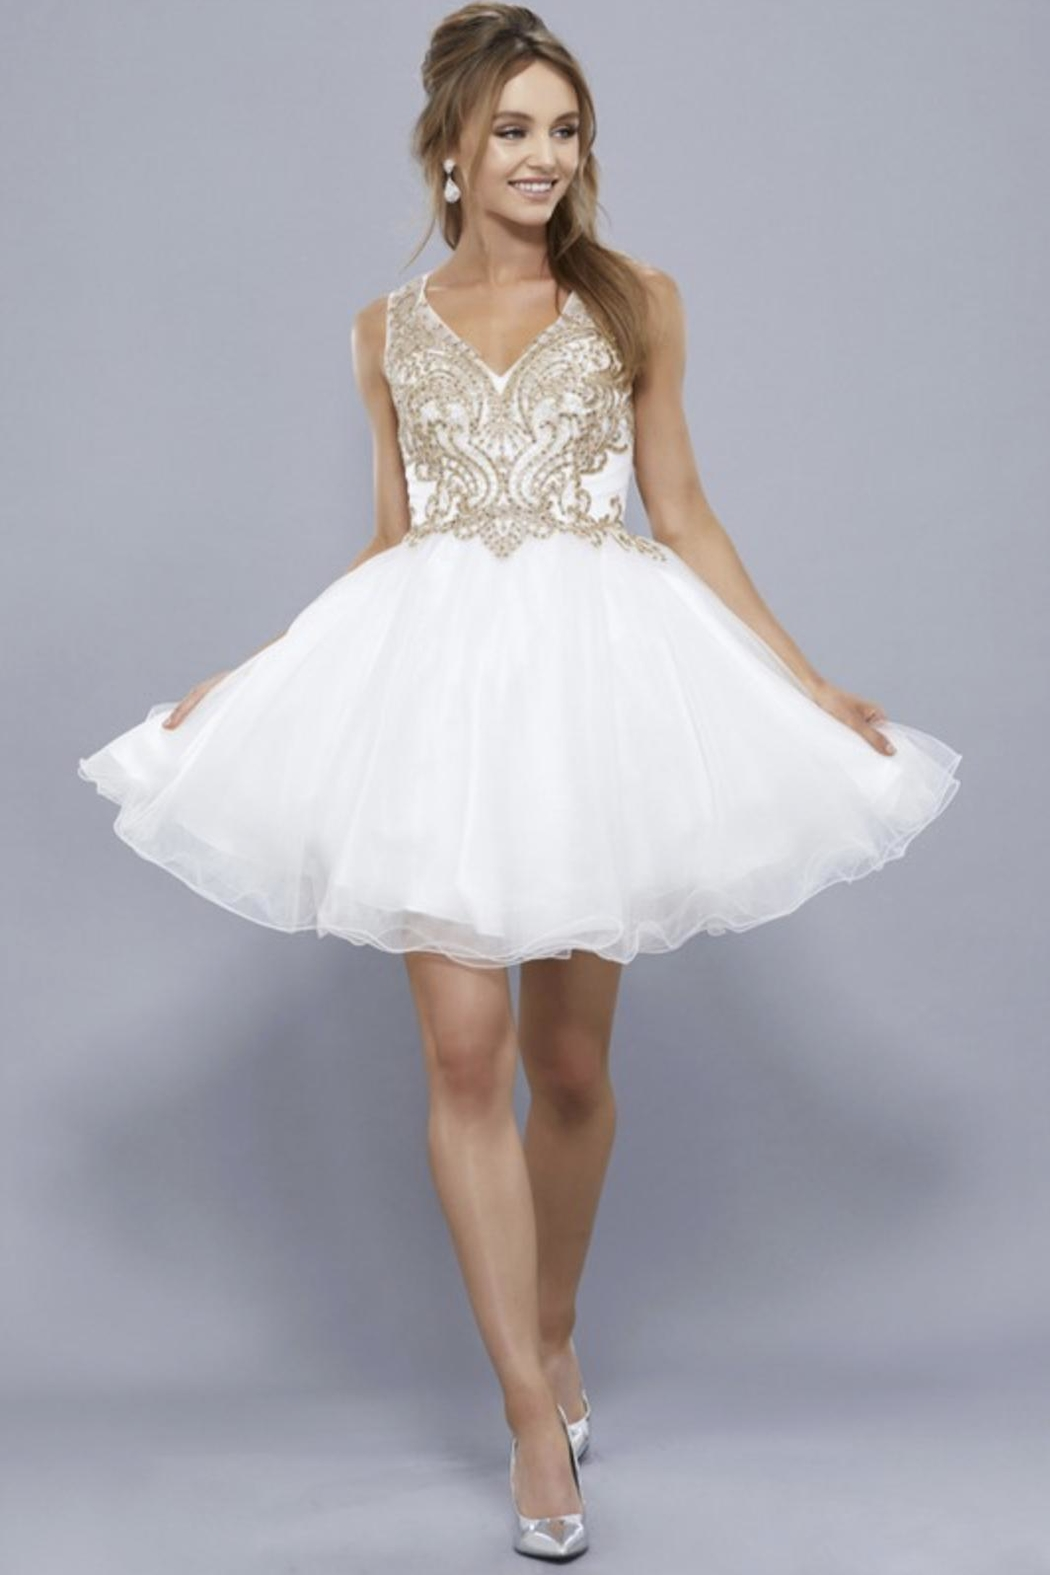 NOX A N A B E L Embroidered Short Prom-Dress - Main Image